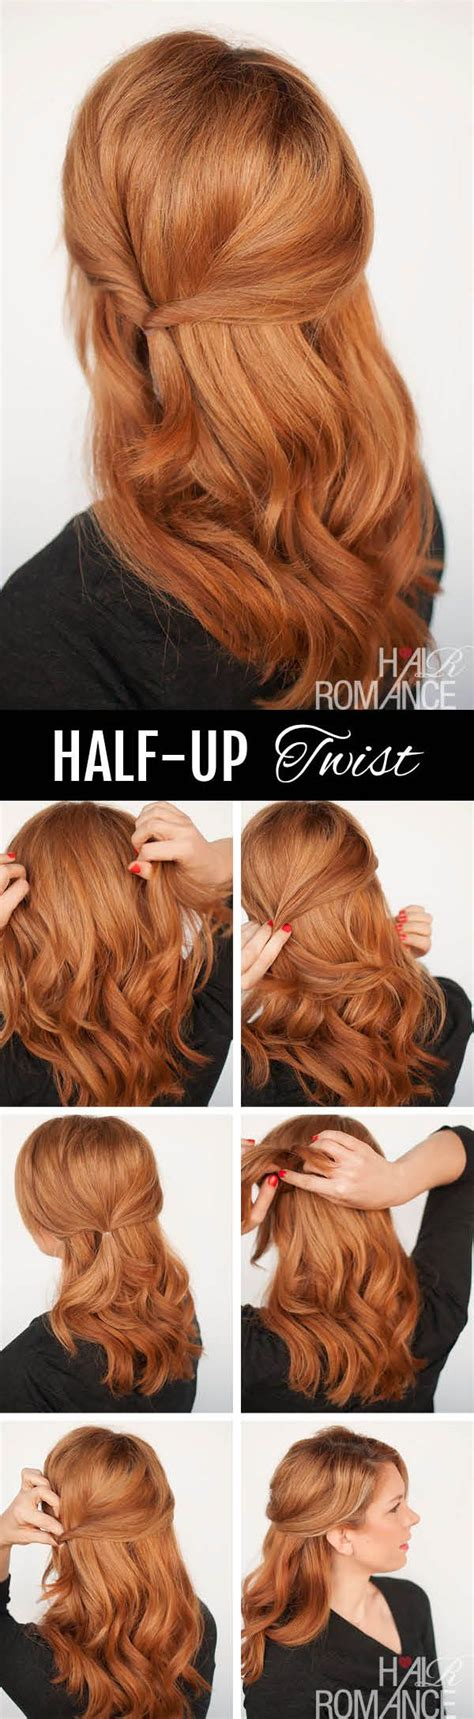 diy hairstyles we heart it we heart it 17 spectacular diy hairstyle ideas for a busy